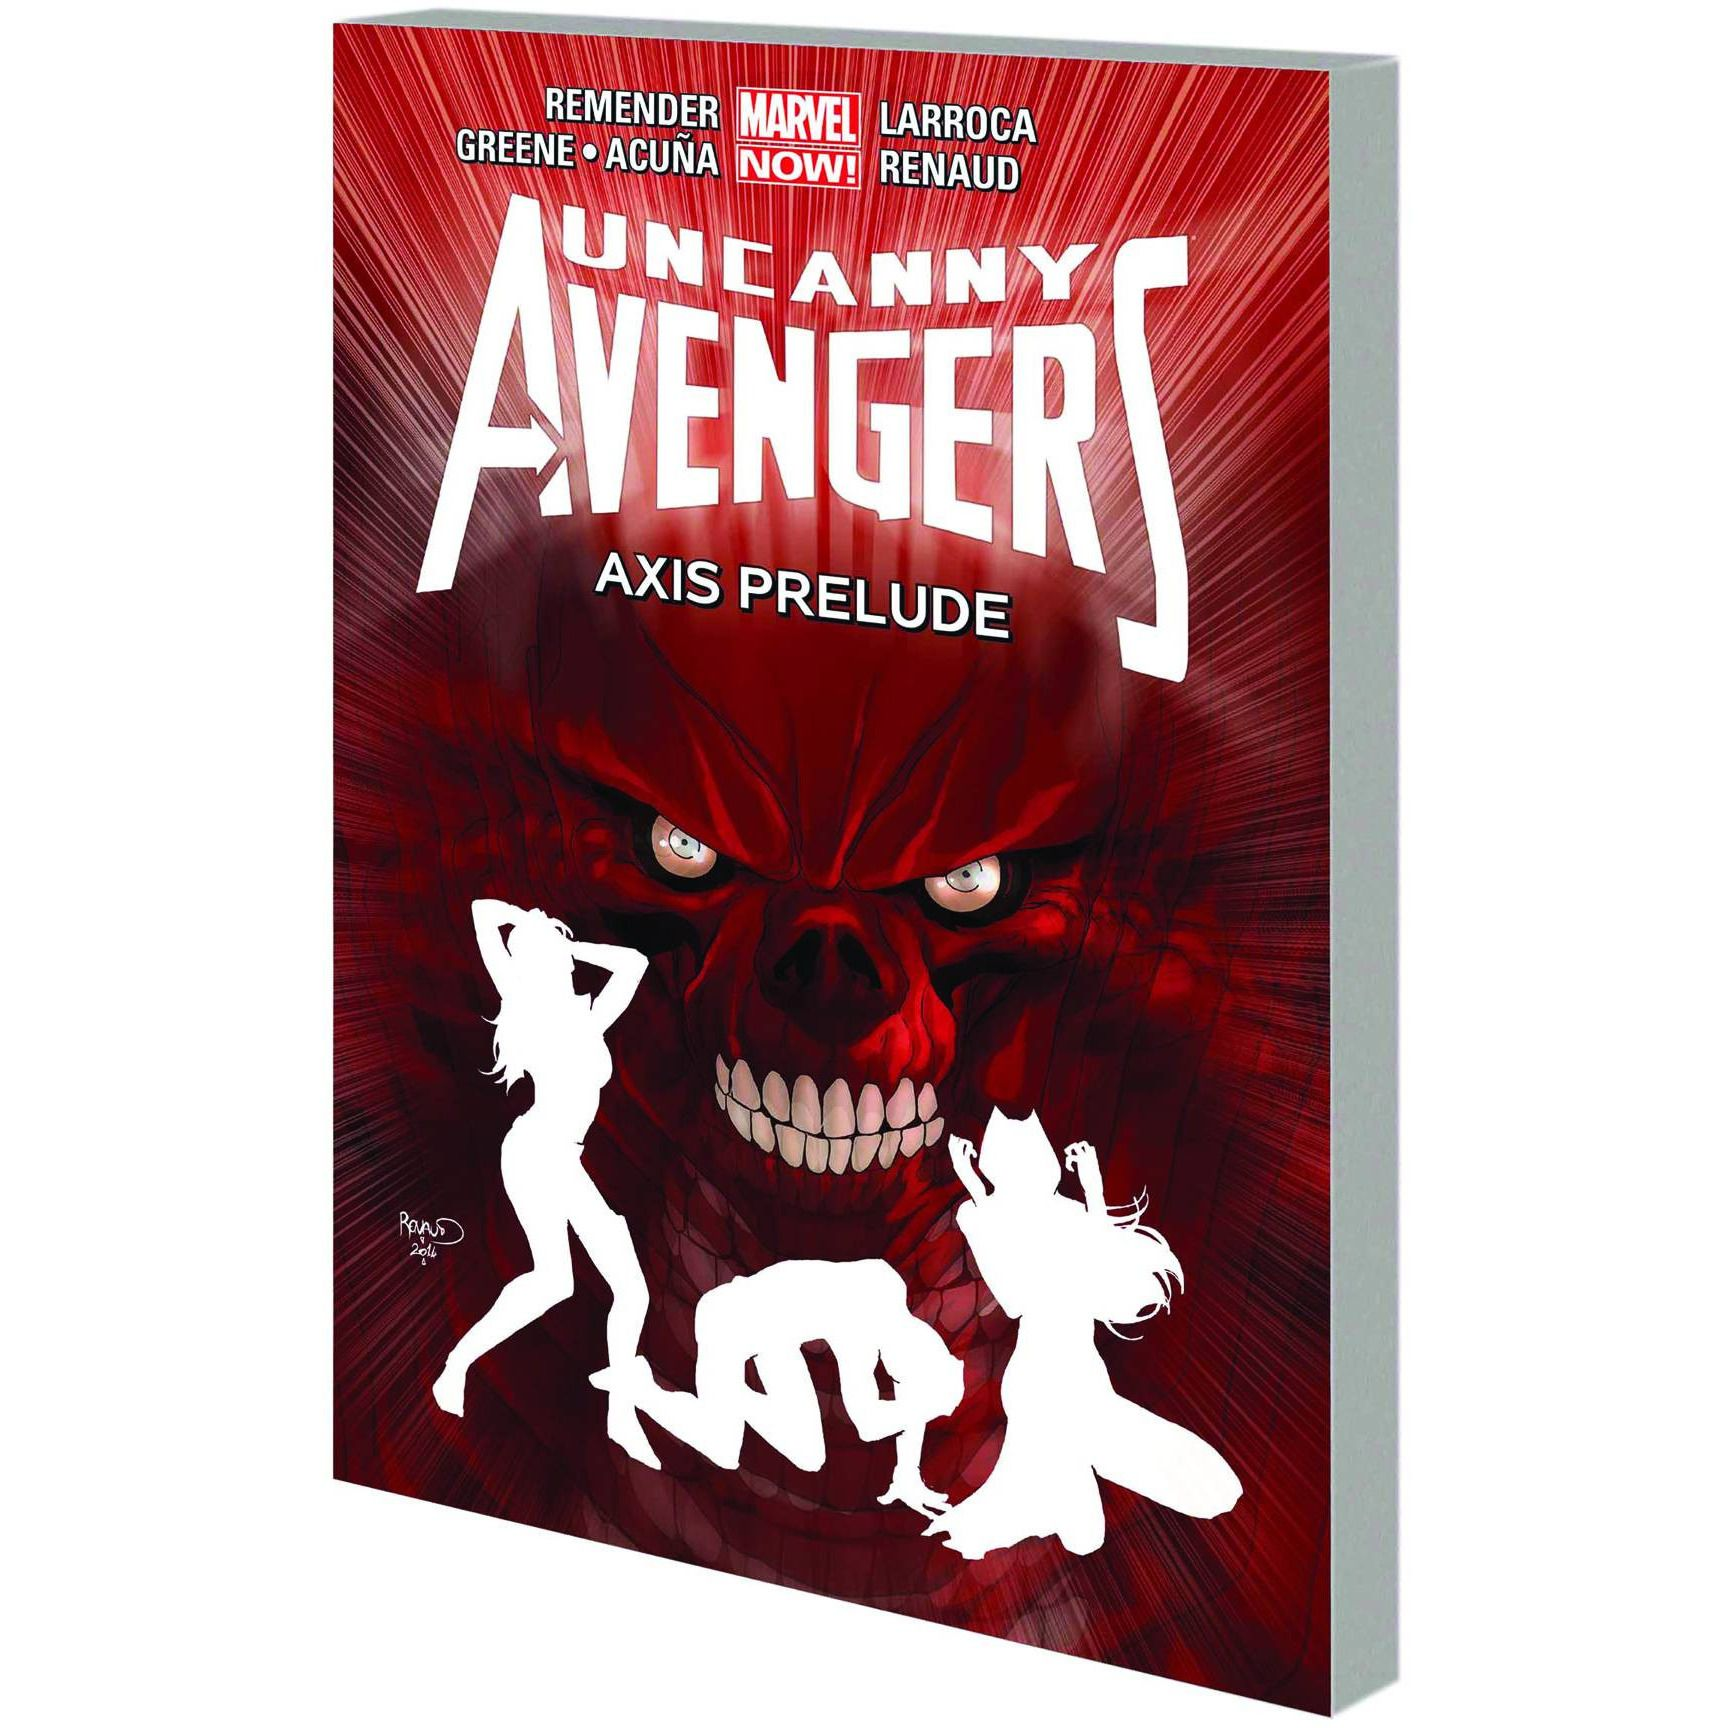 Uncanny Avengers TP VOL 05 AXIS Prelude Uncanny!